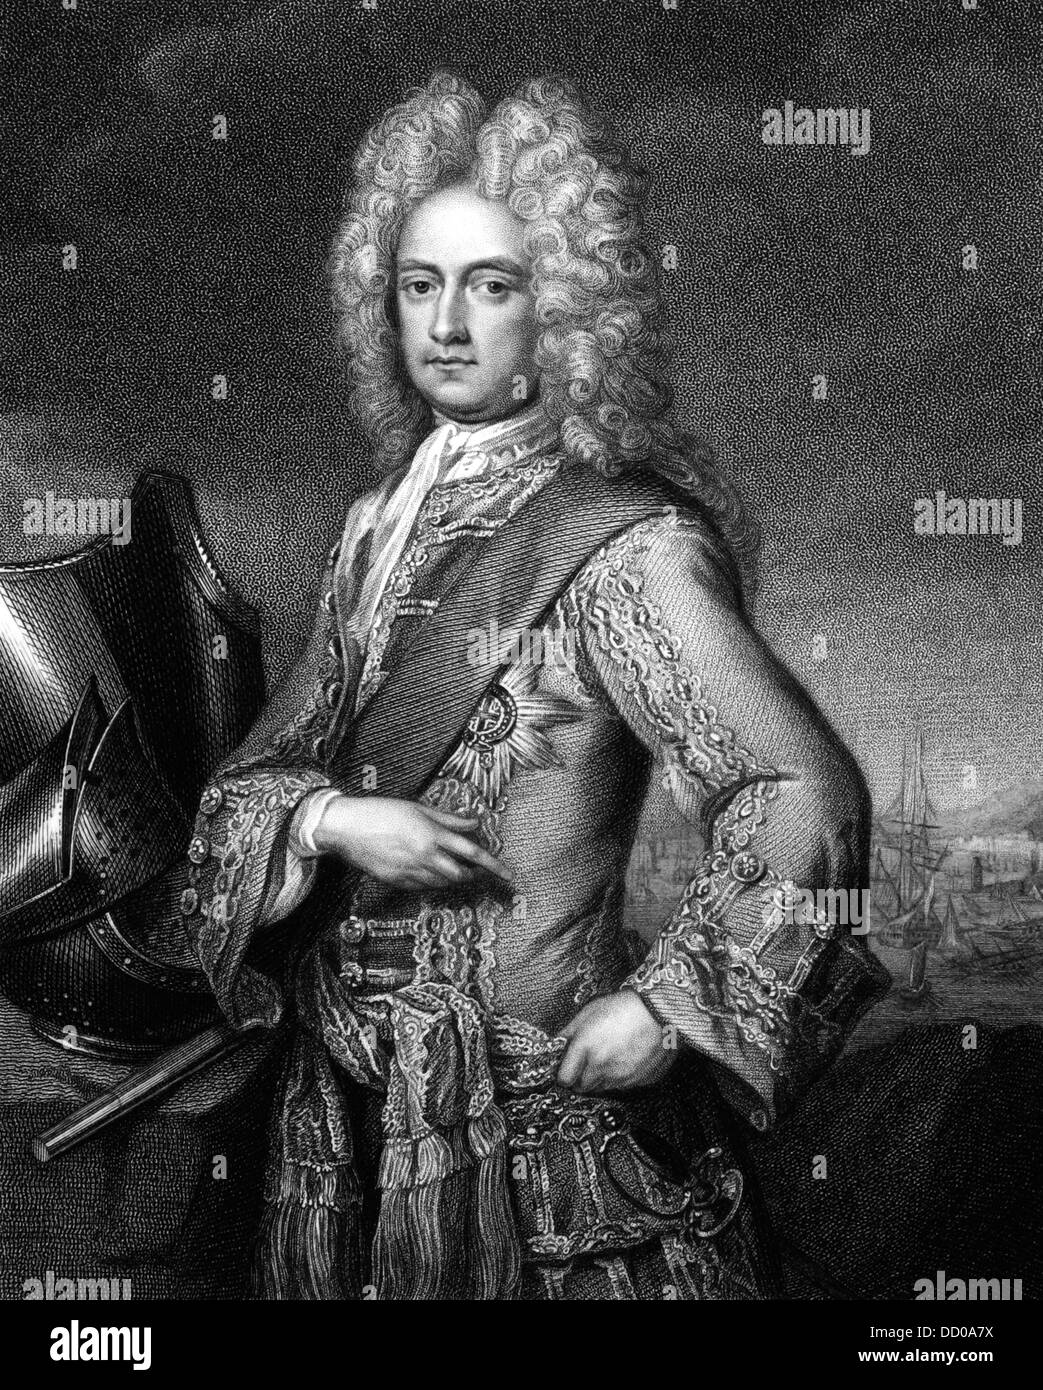 Charles Mordaunt, 3rd Earl of Peterborough (1658-1735) on engraving from 1830. English nobleman and military leader. Stock Photo